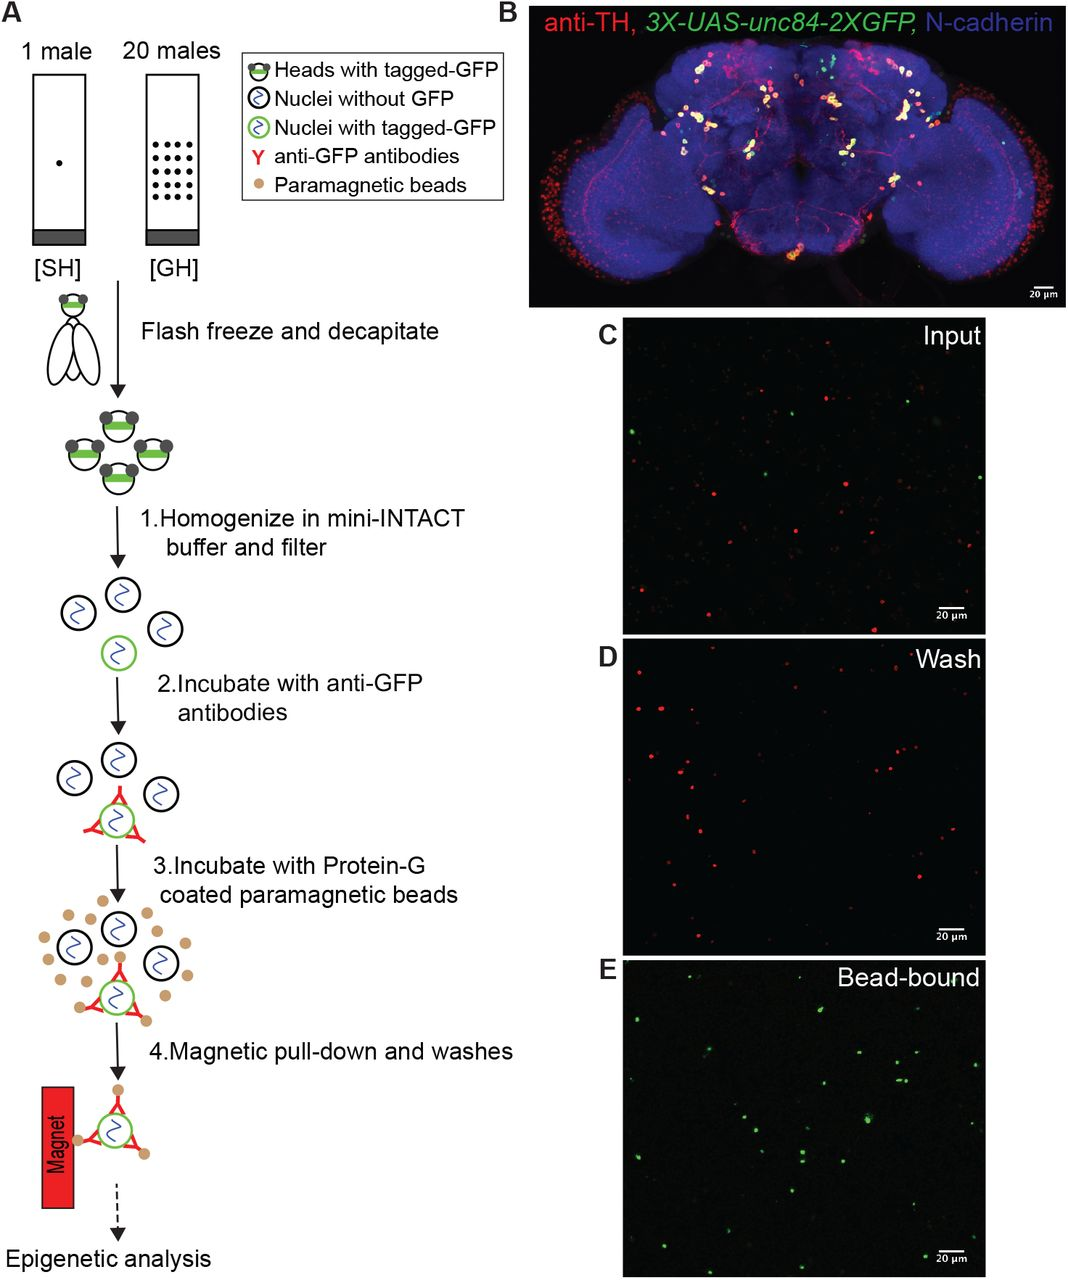 Shared Epigenetic Changes Underlie >> Social Isolation Induced Epigenetic And Transcriptional Changes In